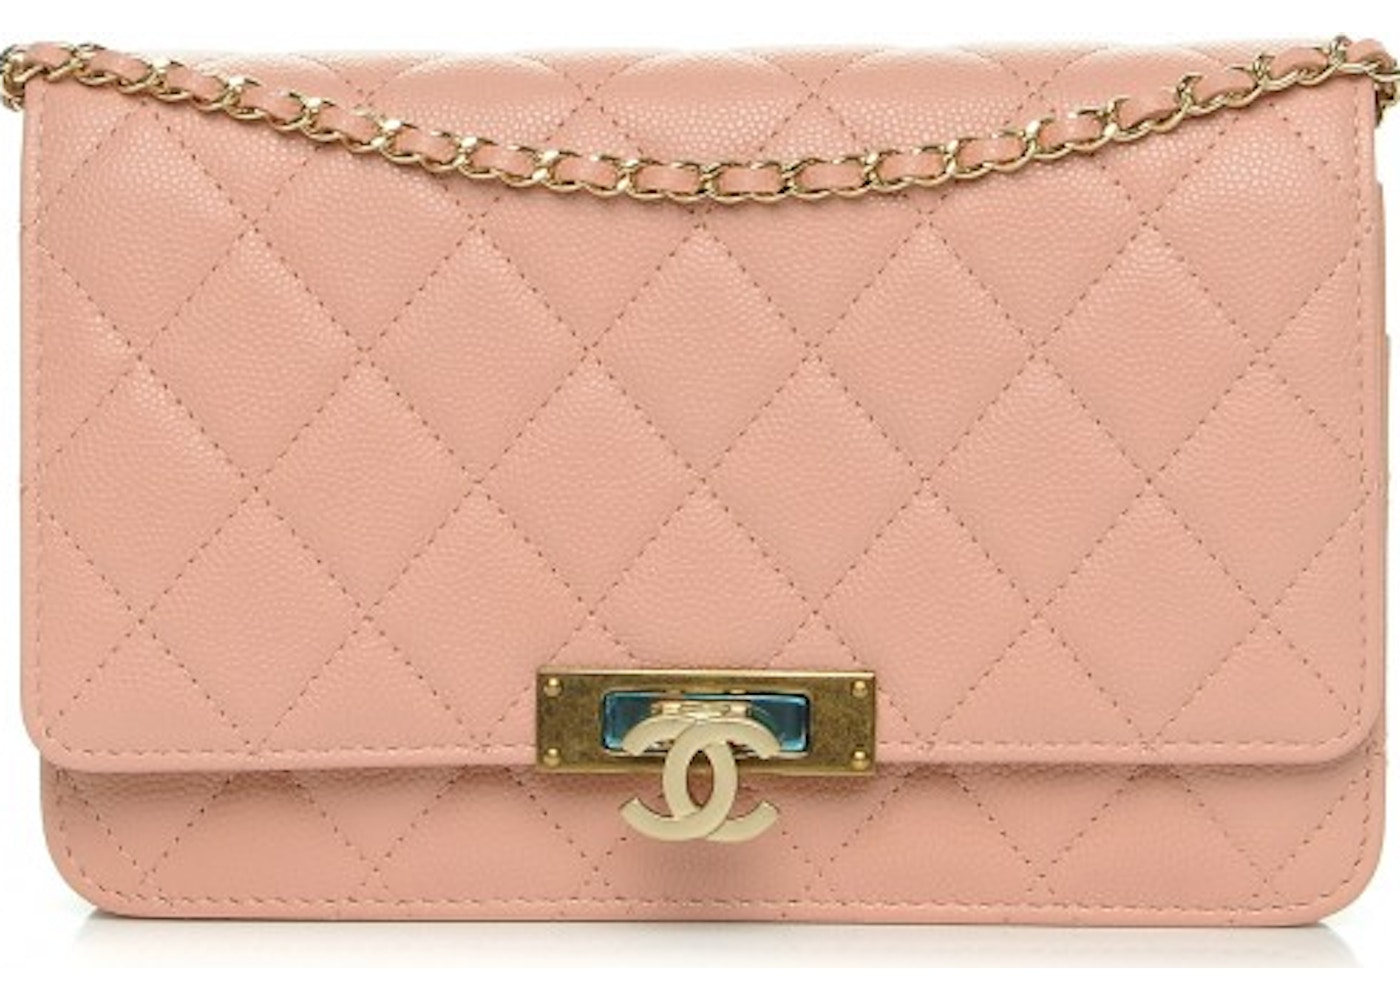 711a24948547 Chanel Golden Class Wallet On Chain Quilted Diamond Light Pink. Quilted  Diamond Light Pink